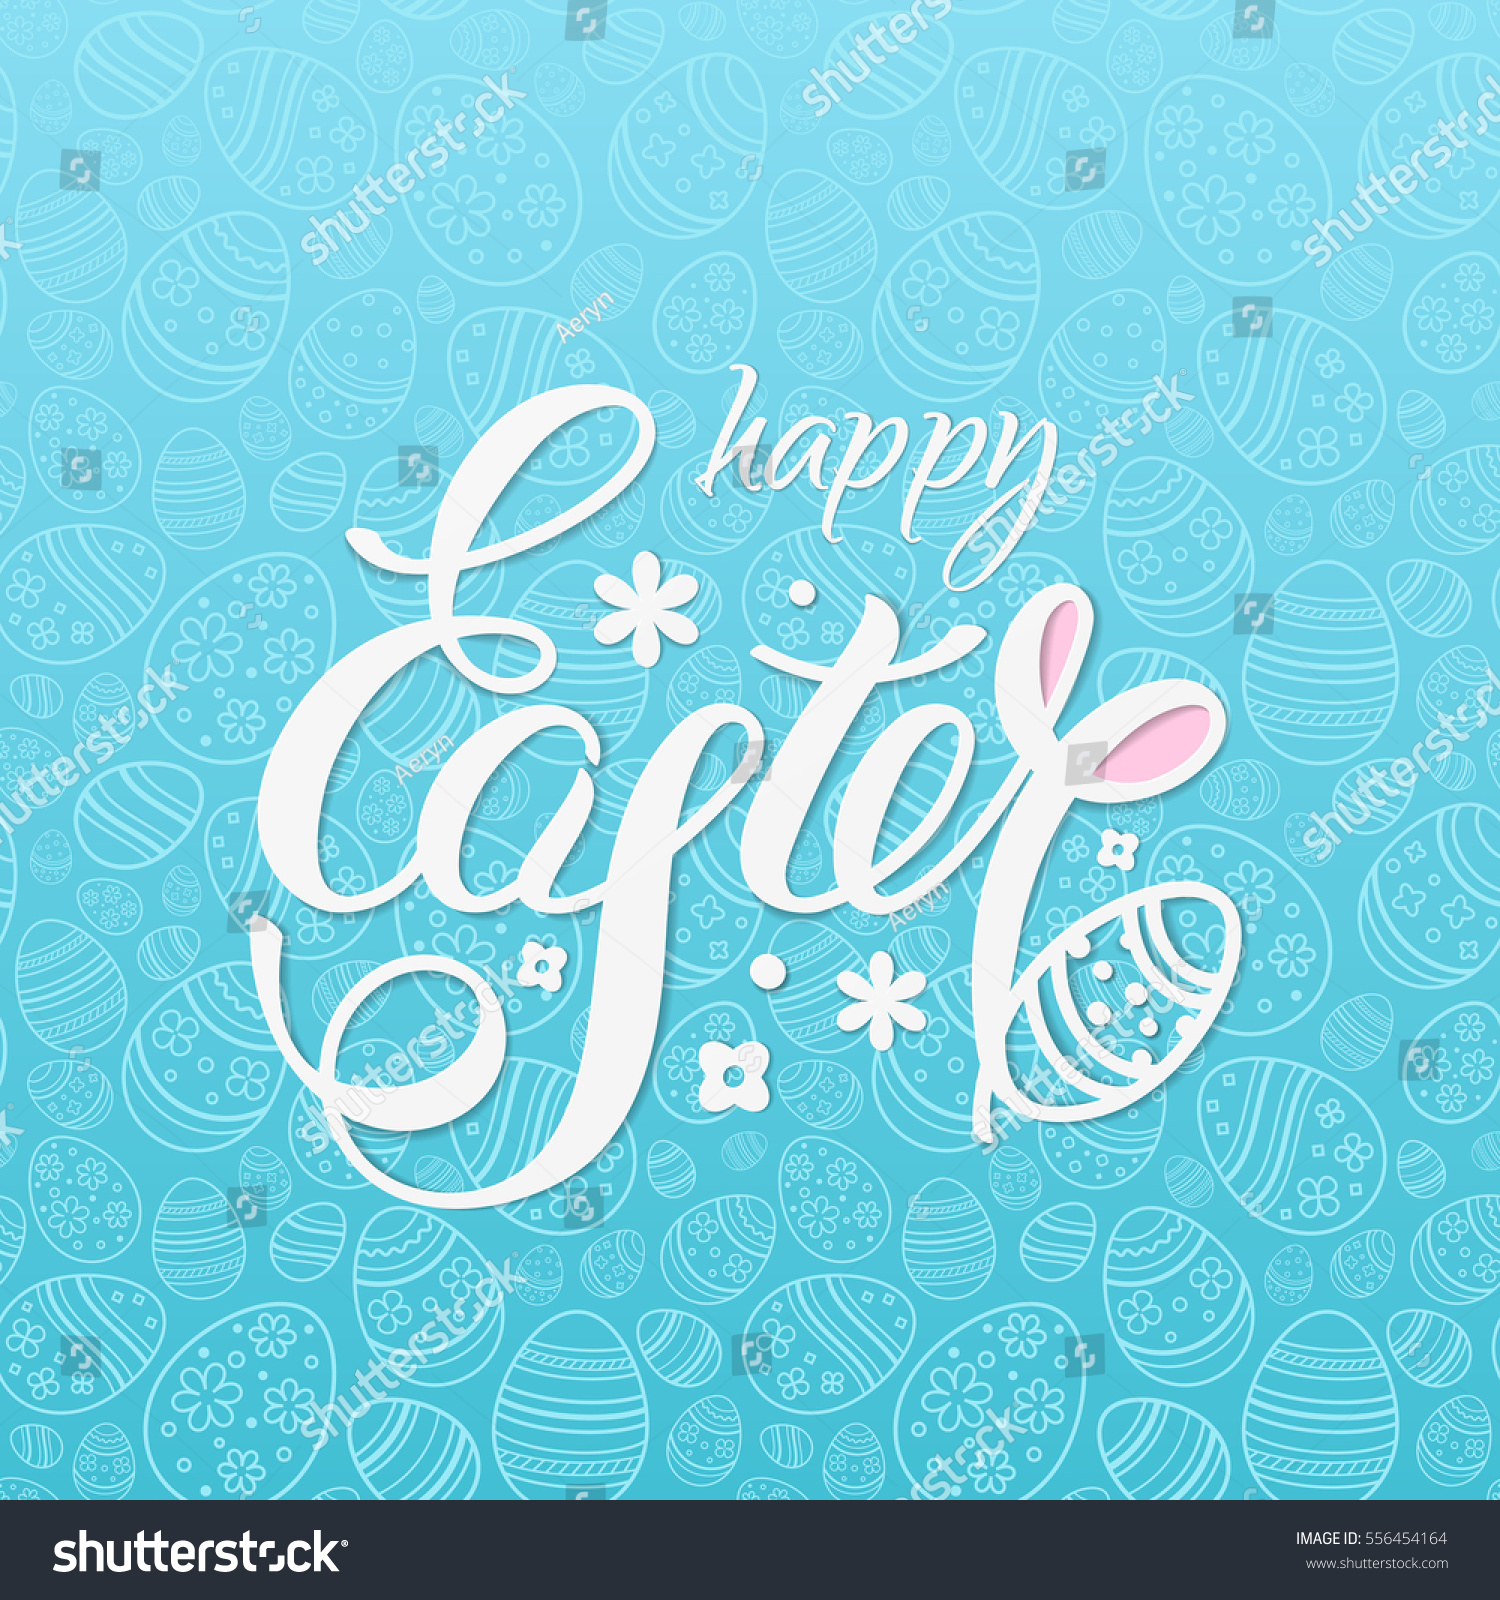 Happy Easter Vector Illustration Design Posters Stock ...